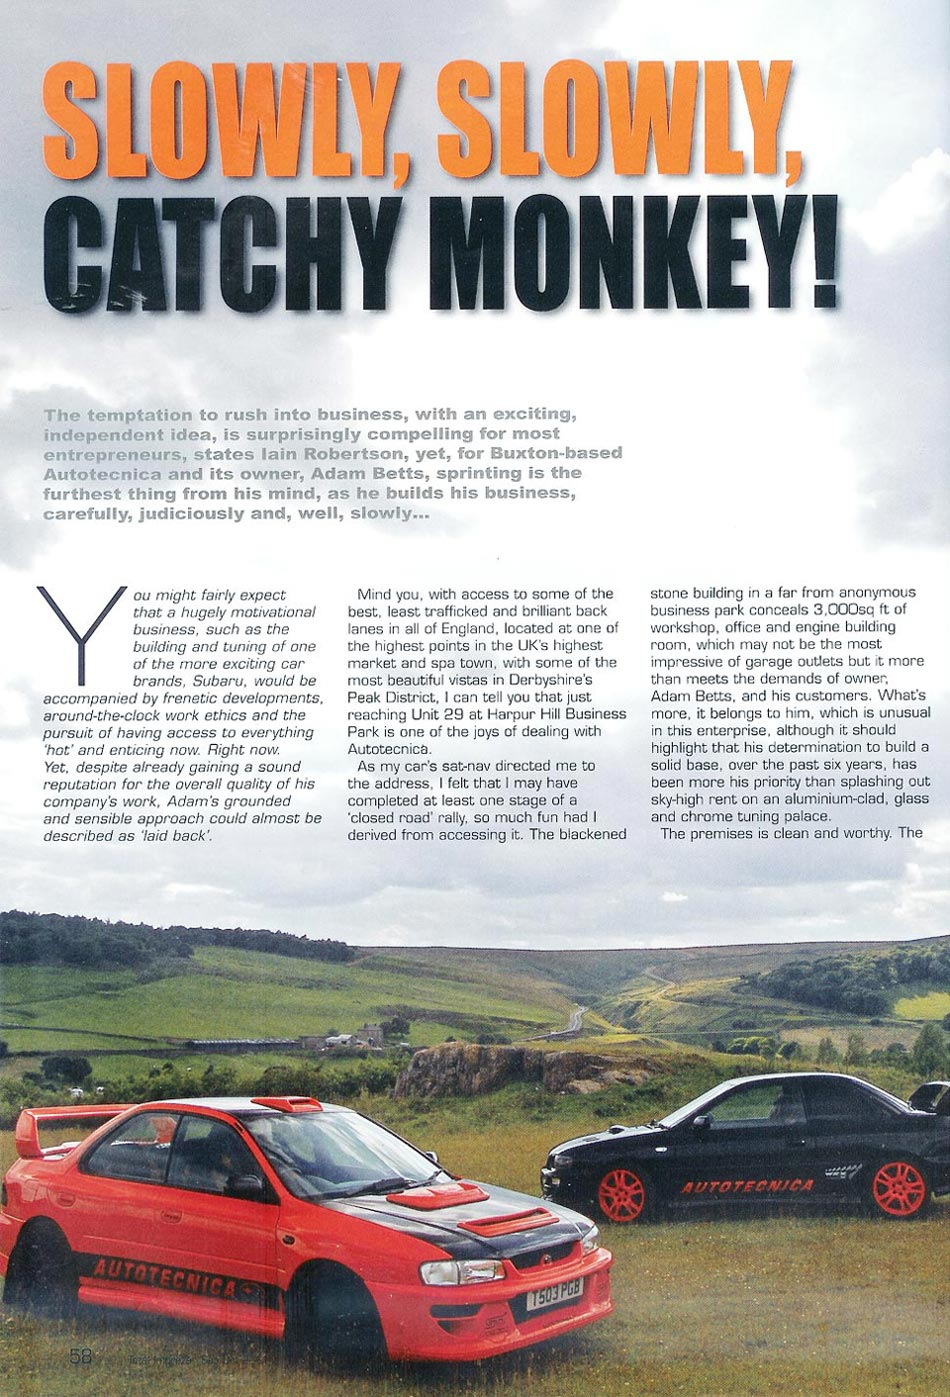 Slowly, Slowly, Catchy Monkey - Total Impreza Magazine